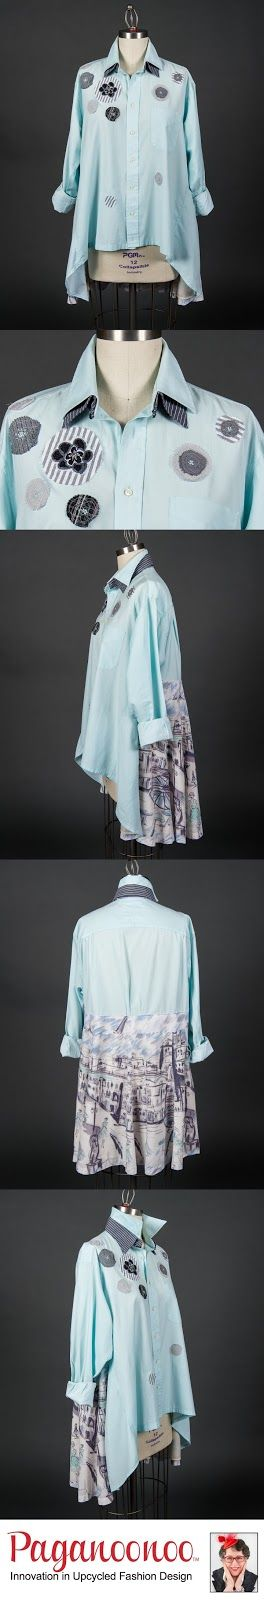 """Upcycled man's dress shirt and woman's lined skirt.  Made using the Paganoonoo upcycle sewing pattern """"Patti"""""""